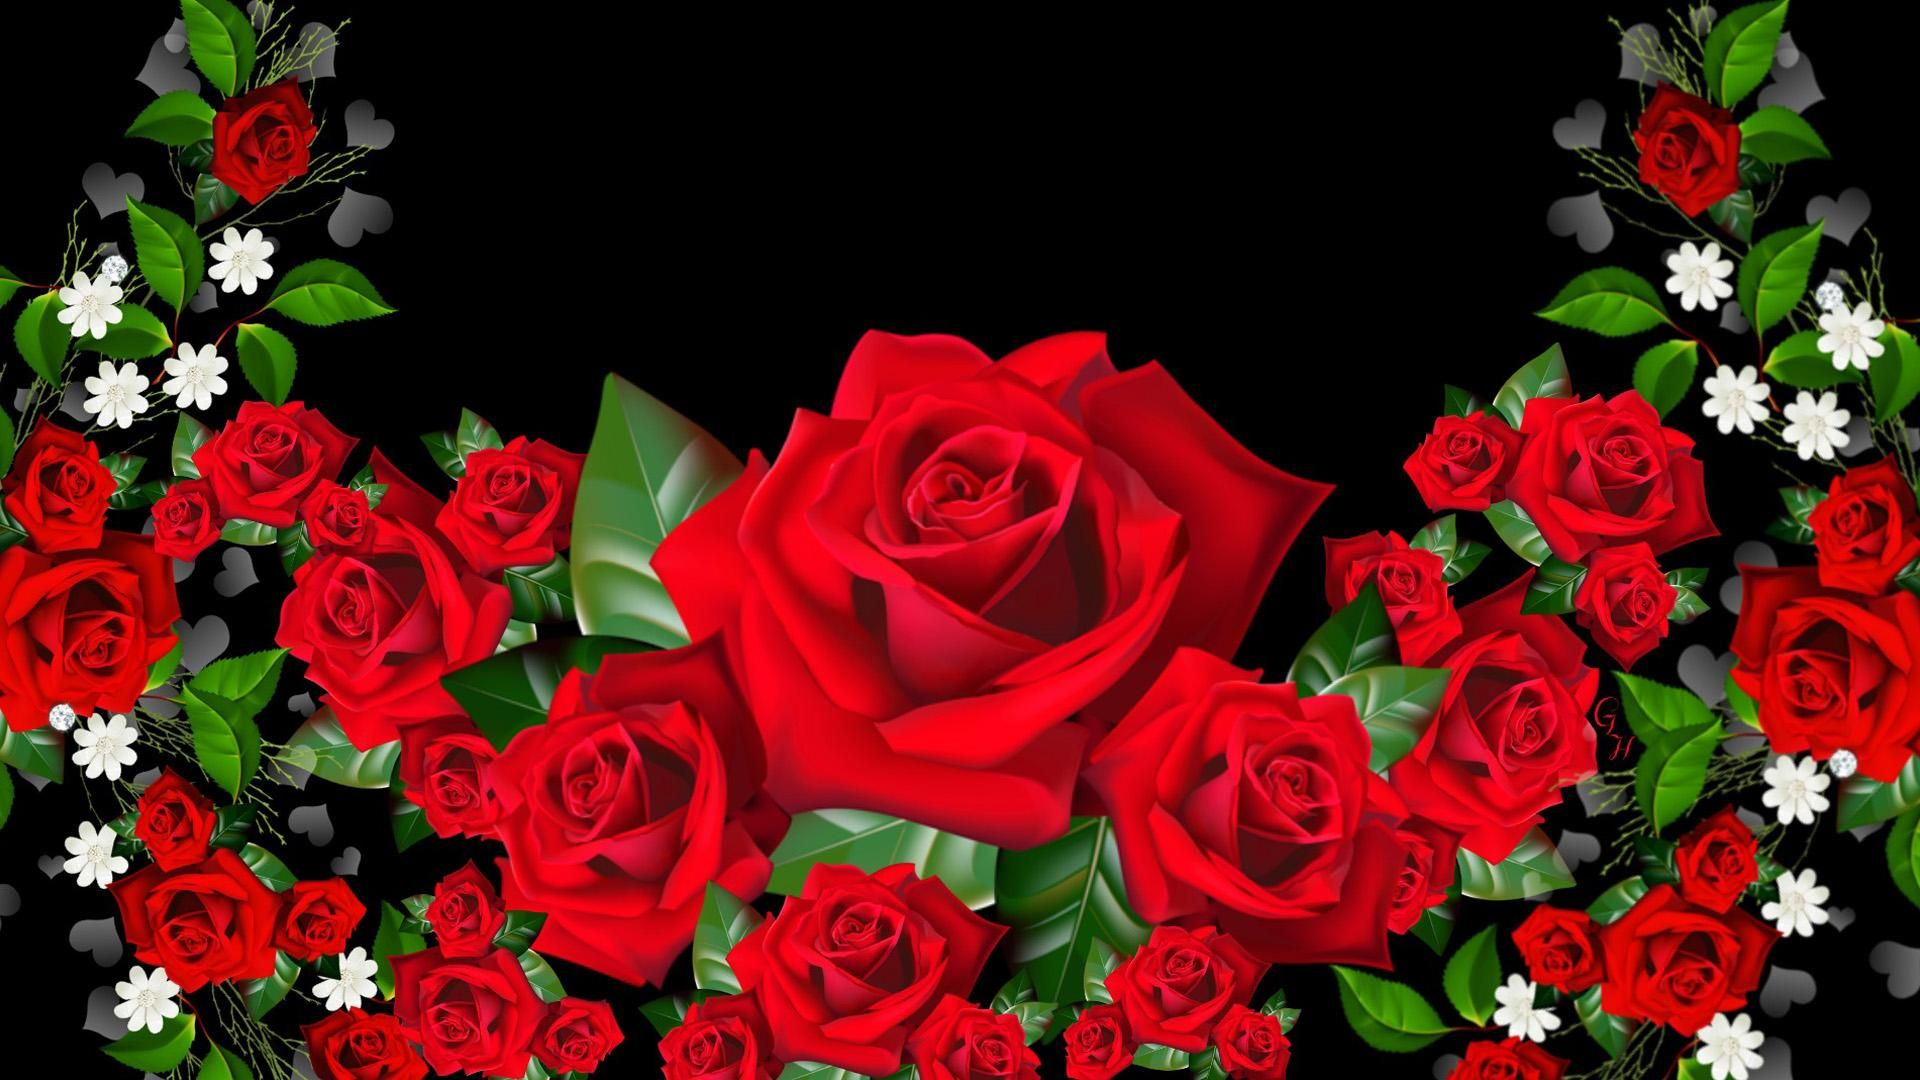 3d Rose Wallpapers Free Download 3d Flower Wallpapers Rose Is Hd Wallpapers Backgrounds For Desktop Or Flower Wallpaper Hd Flower Wallpaper Rose Wallpaper